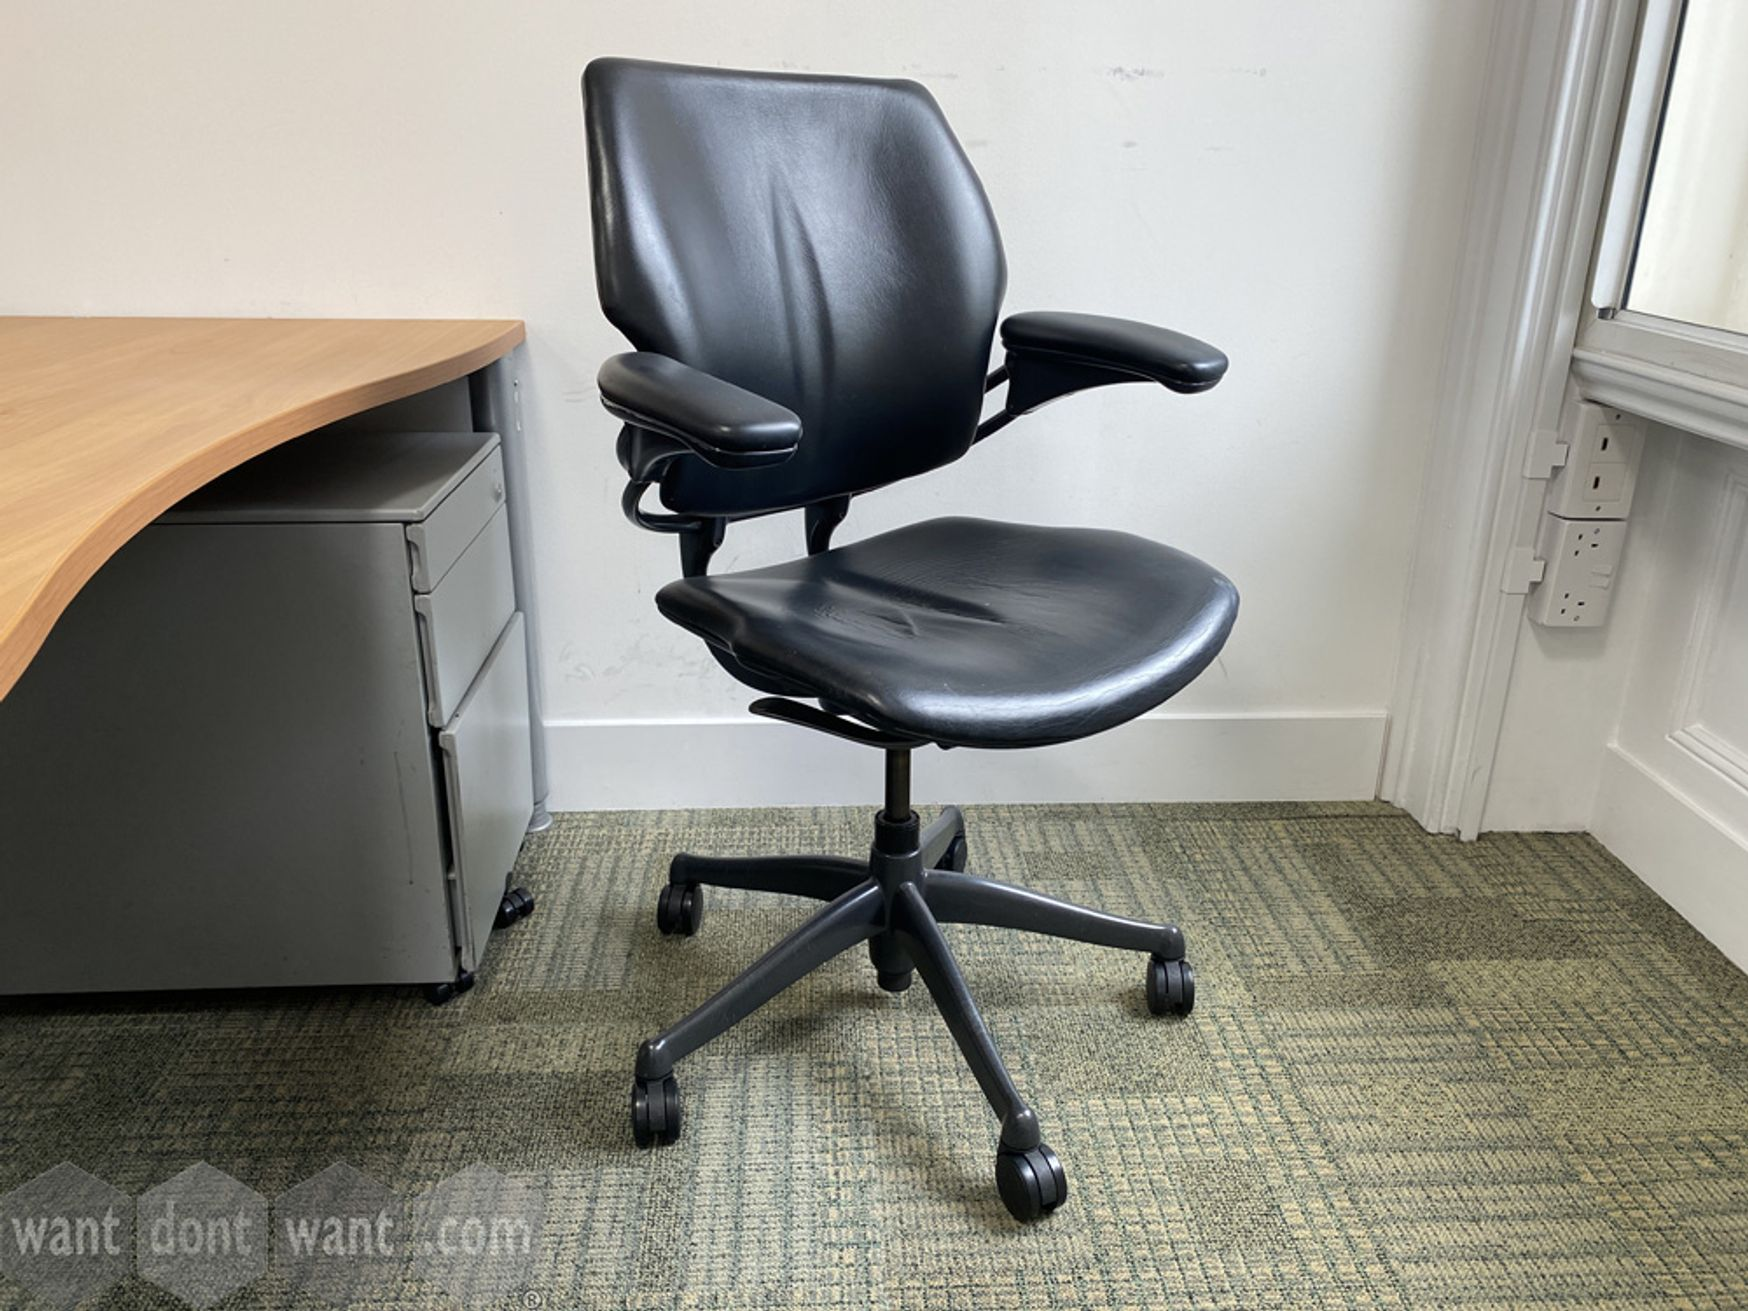 <b>Used Humanscale 'Freedom' chairs in black hide.</b>